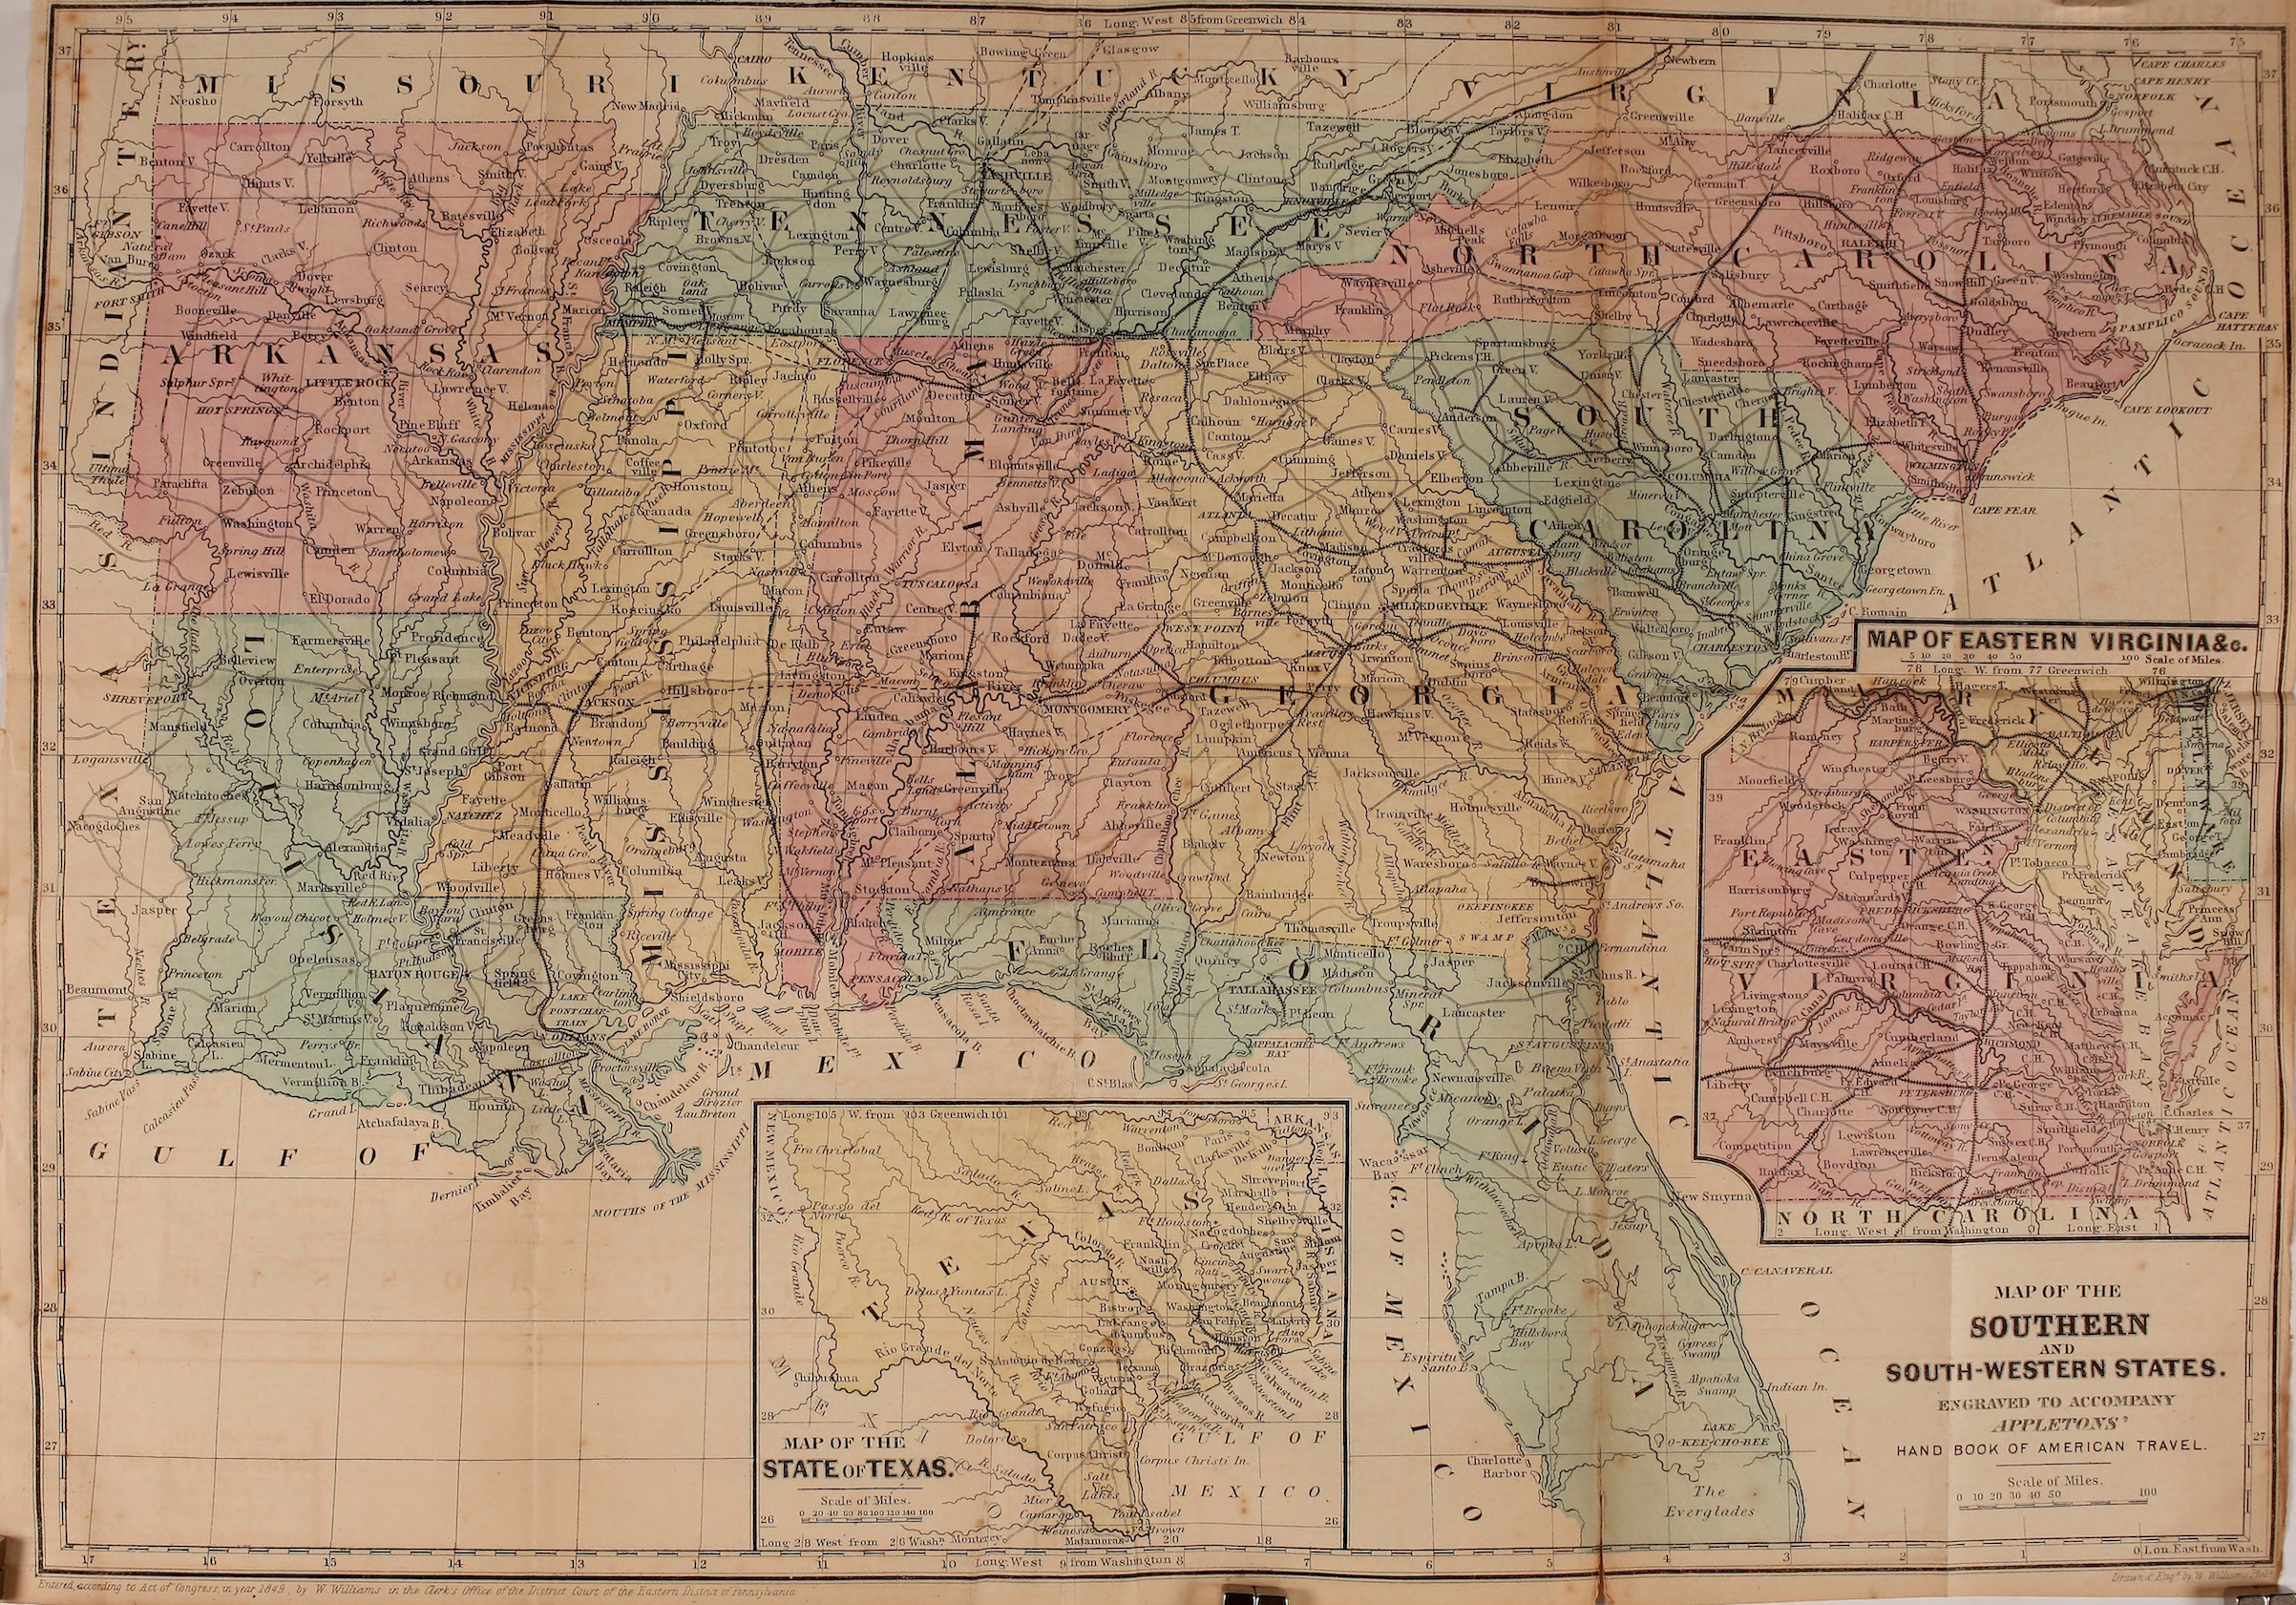 Color, political and physical map of the Southern and South-Western States, with insets illustrating Texas and the Eastern Virginias, 1857.